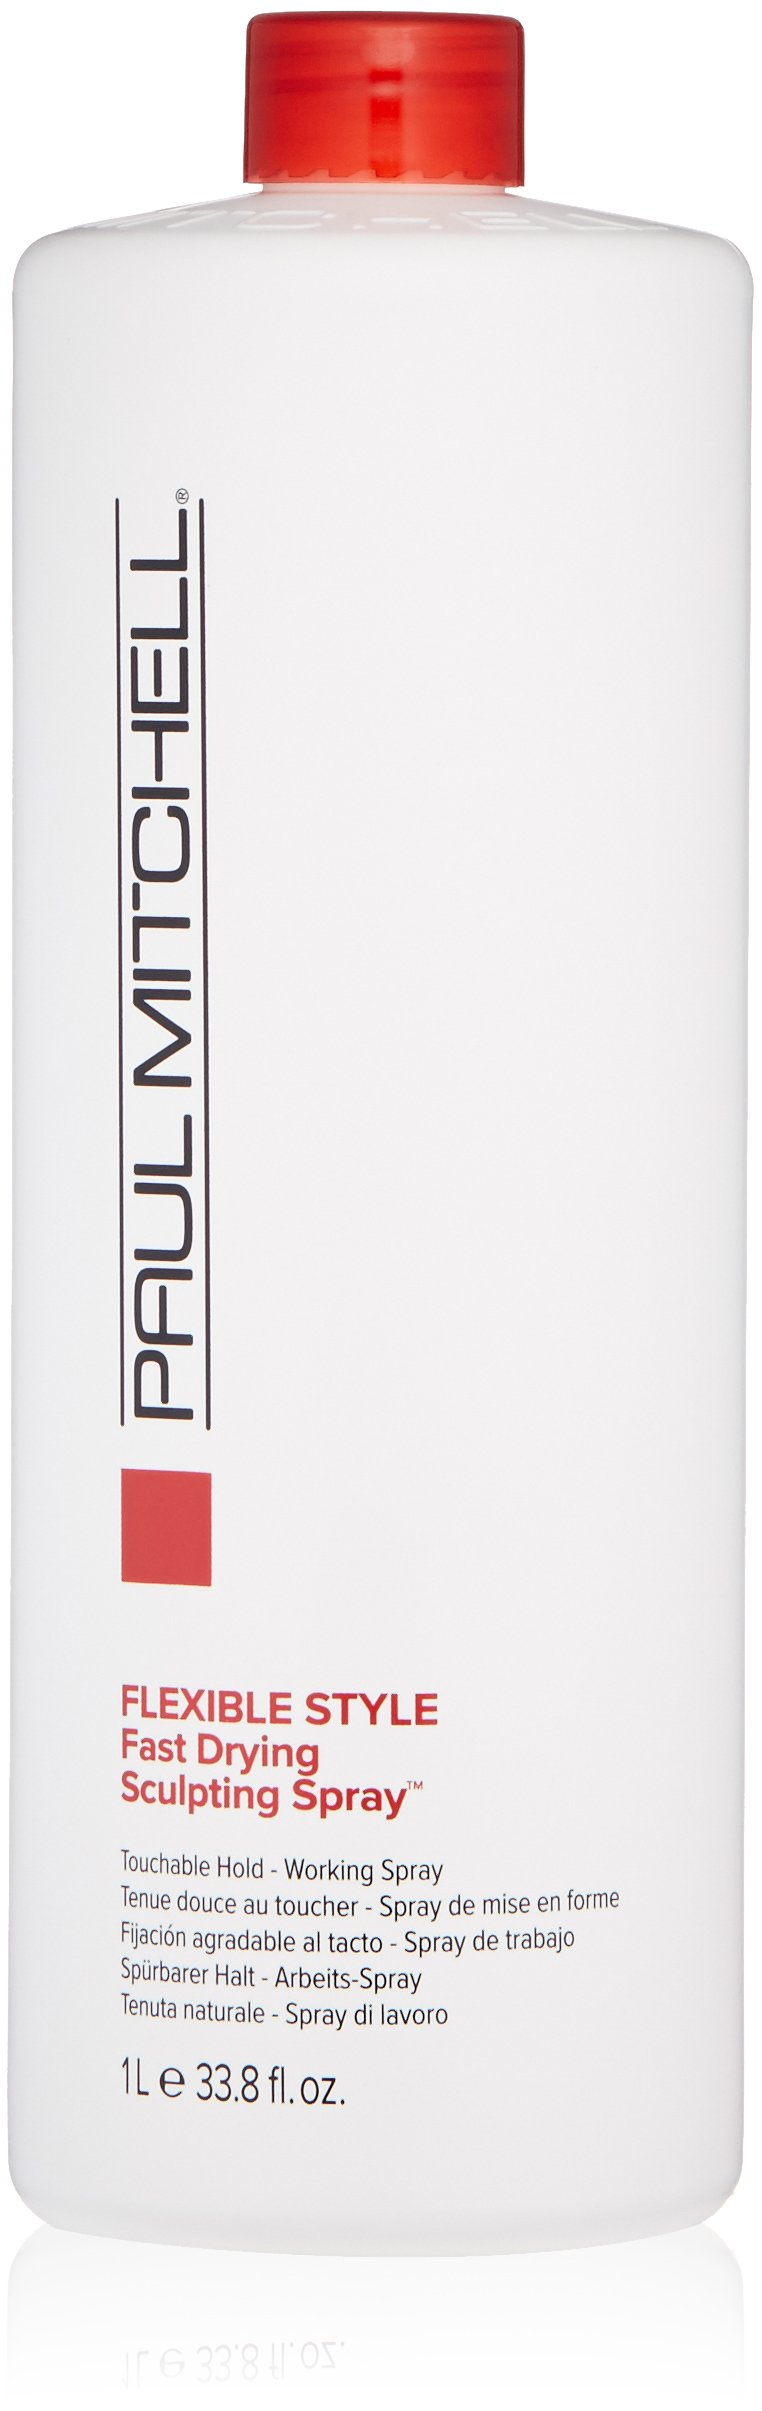 Paul Mitchell Fast Drying Sculpting Spray,33.8 Fl Oz by Paul Mitchell